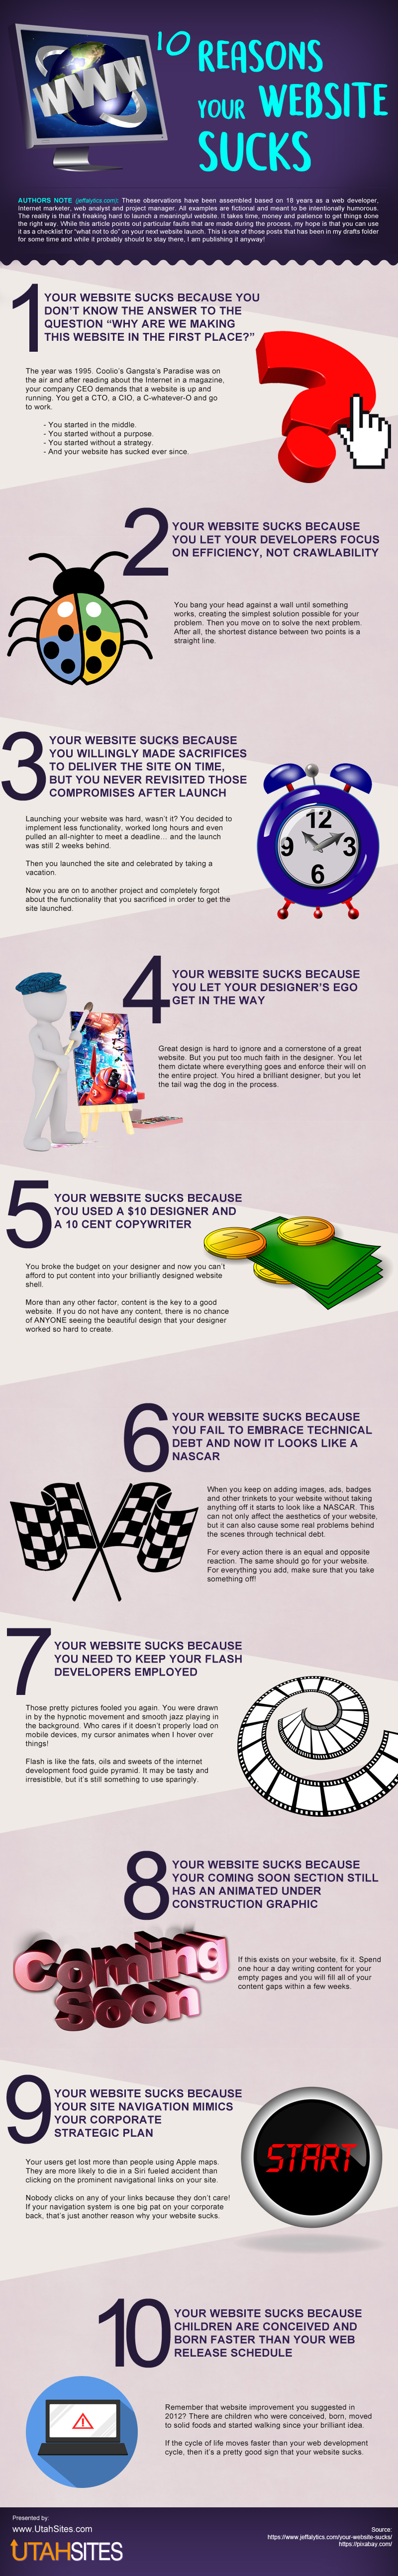 Reasons Your Website Sucks [Infographic]